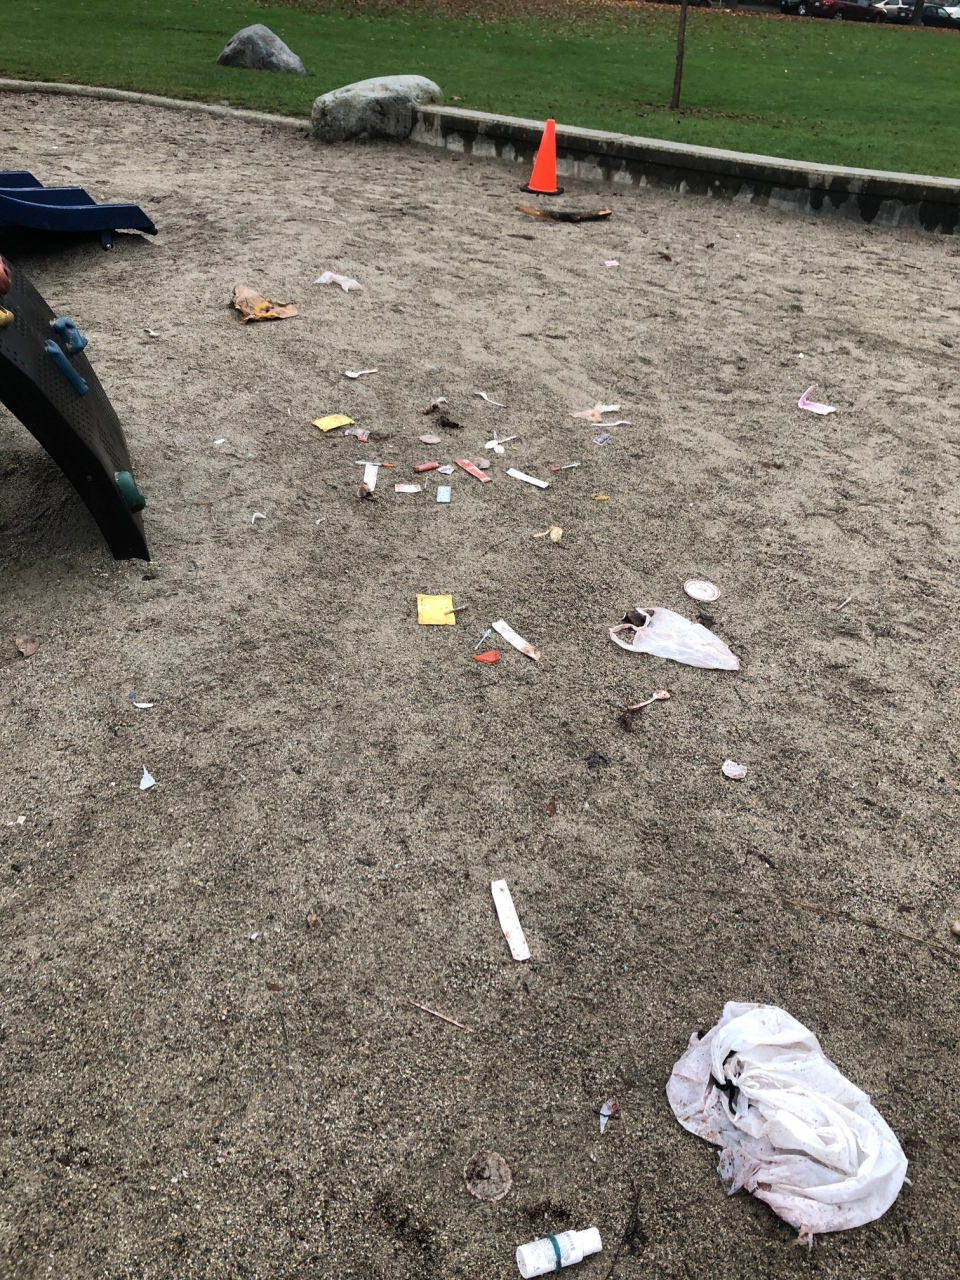 Used needles found in Vancouver playground